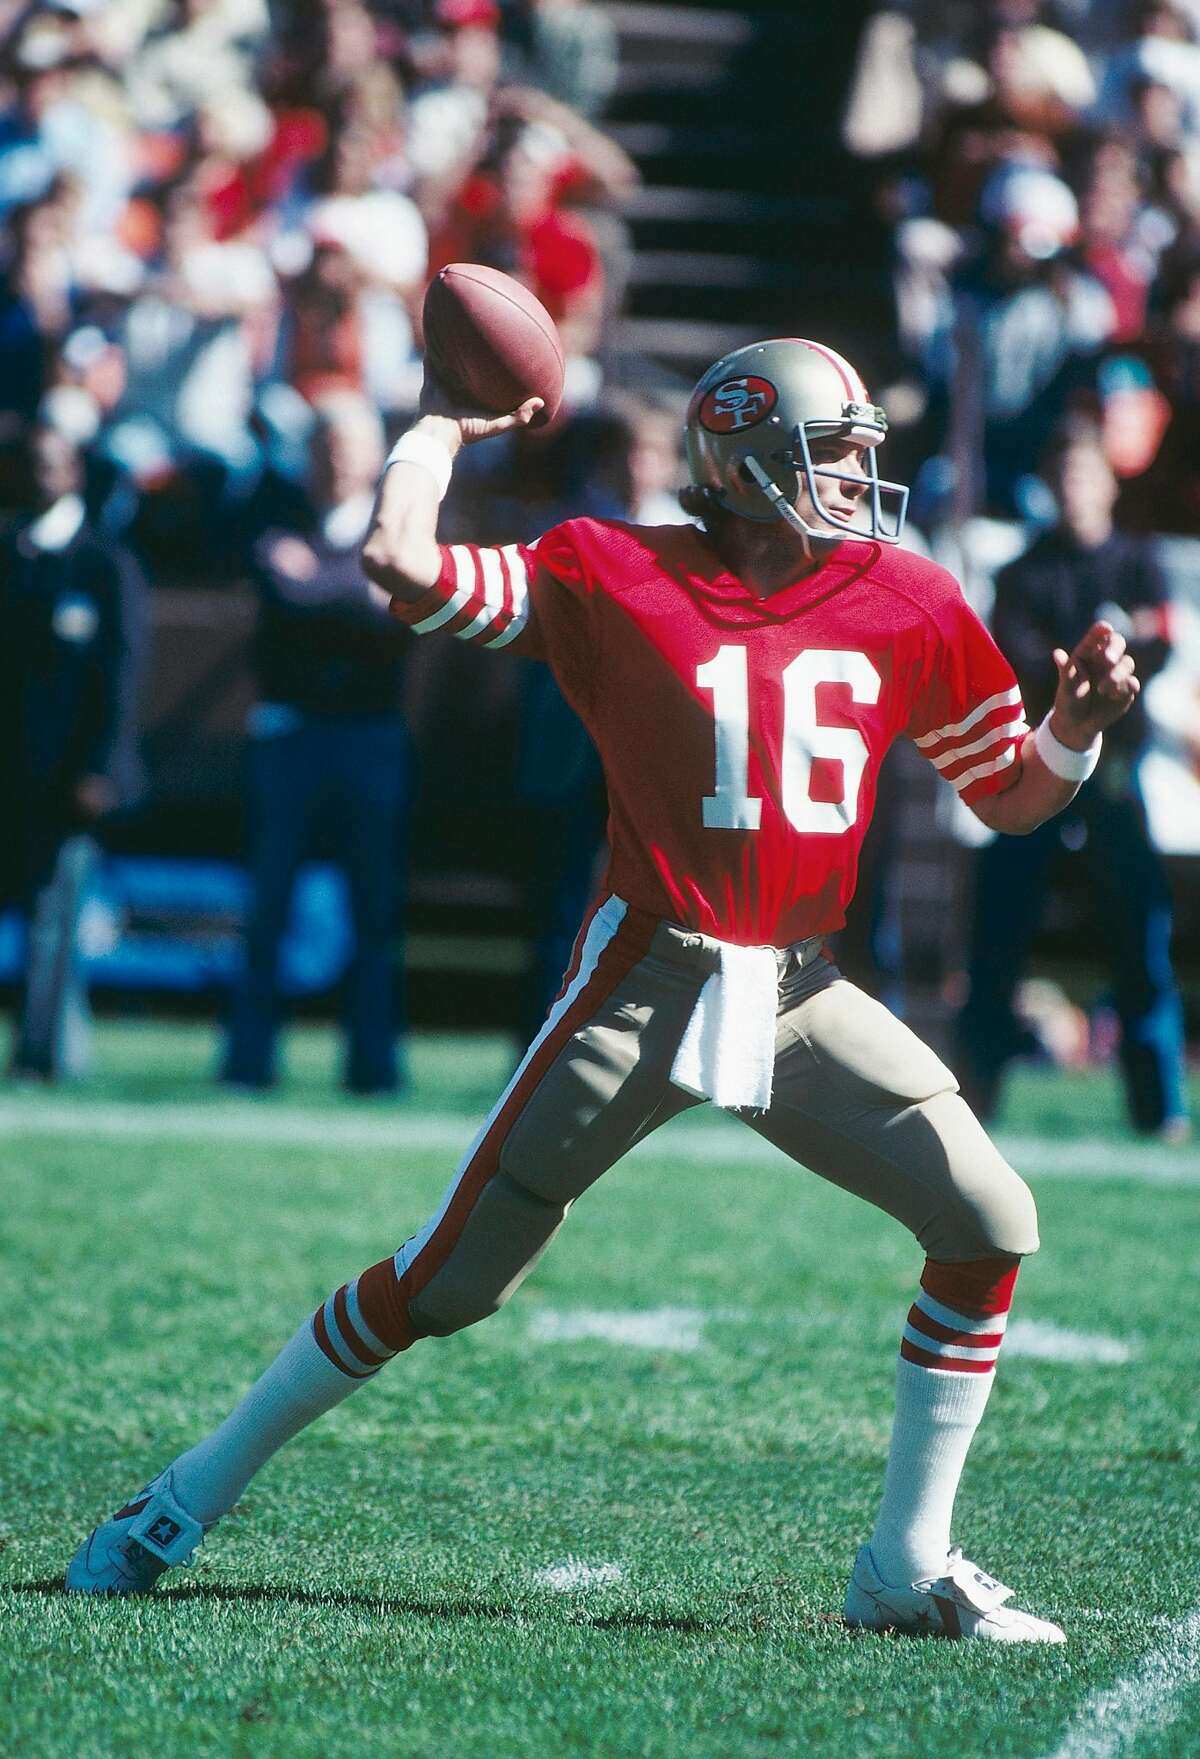 SAN FRANCISCO - OCTOBER 1981: Joe Montana of the San Francisco Forty-Niners passes at Candlestick Park in San Francisco, California.